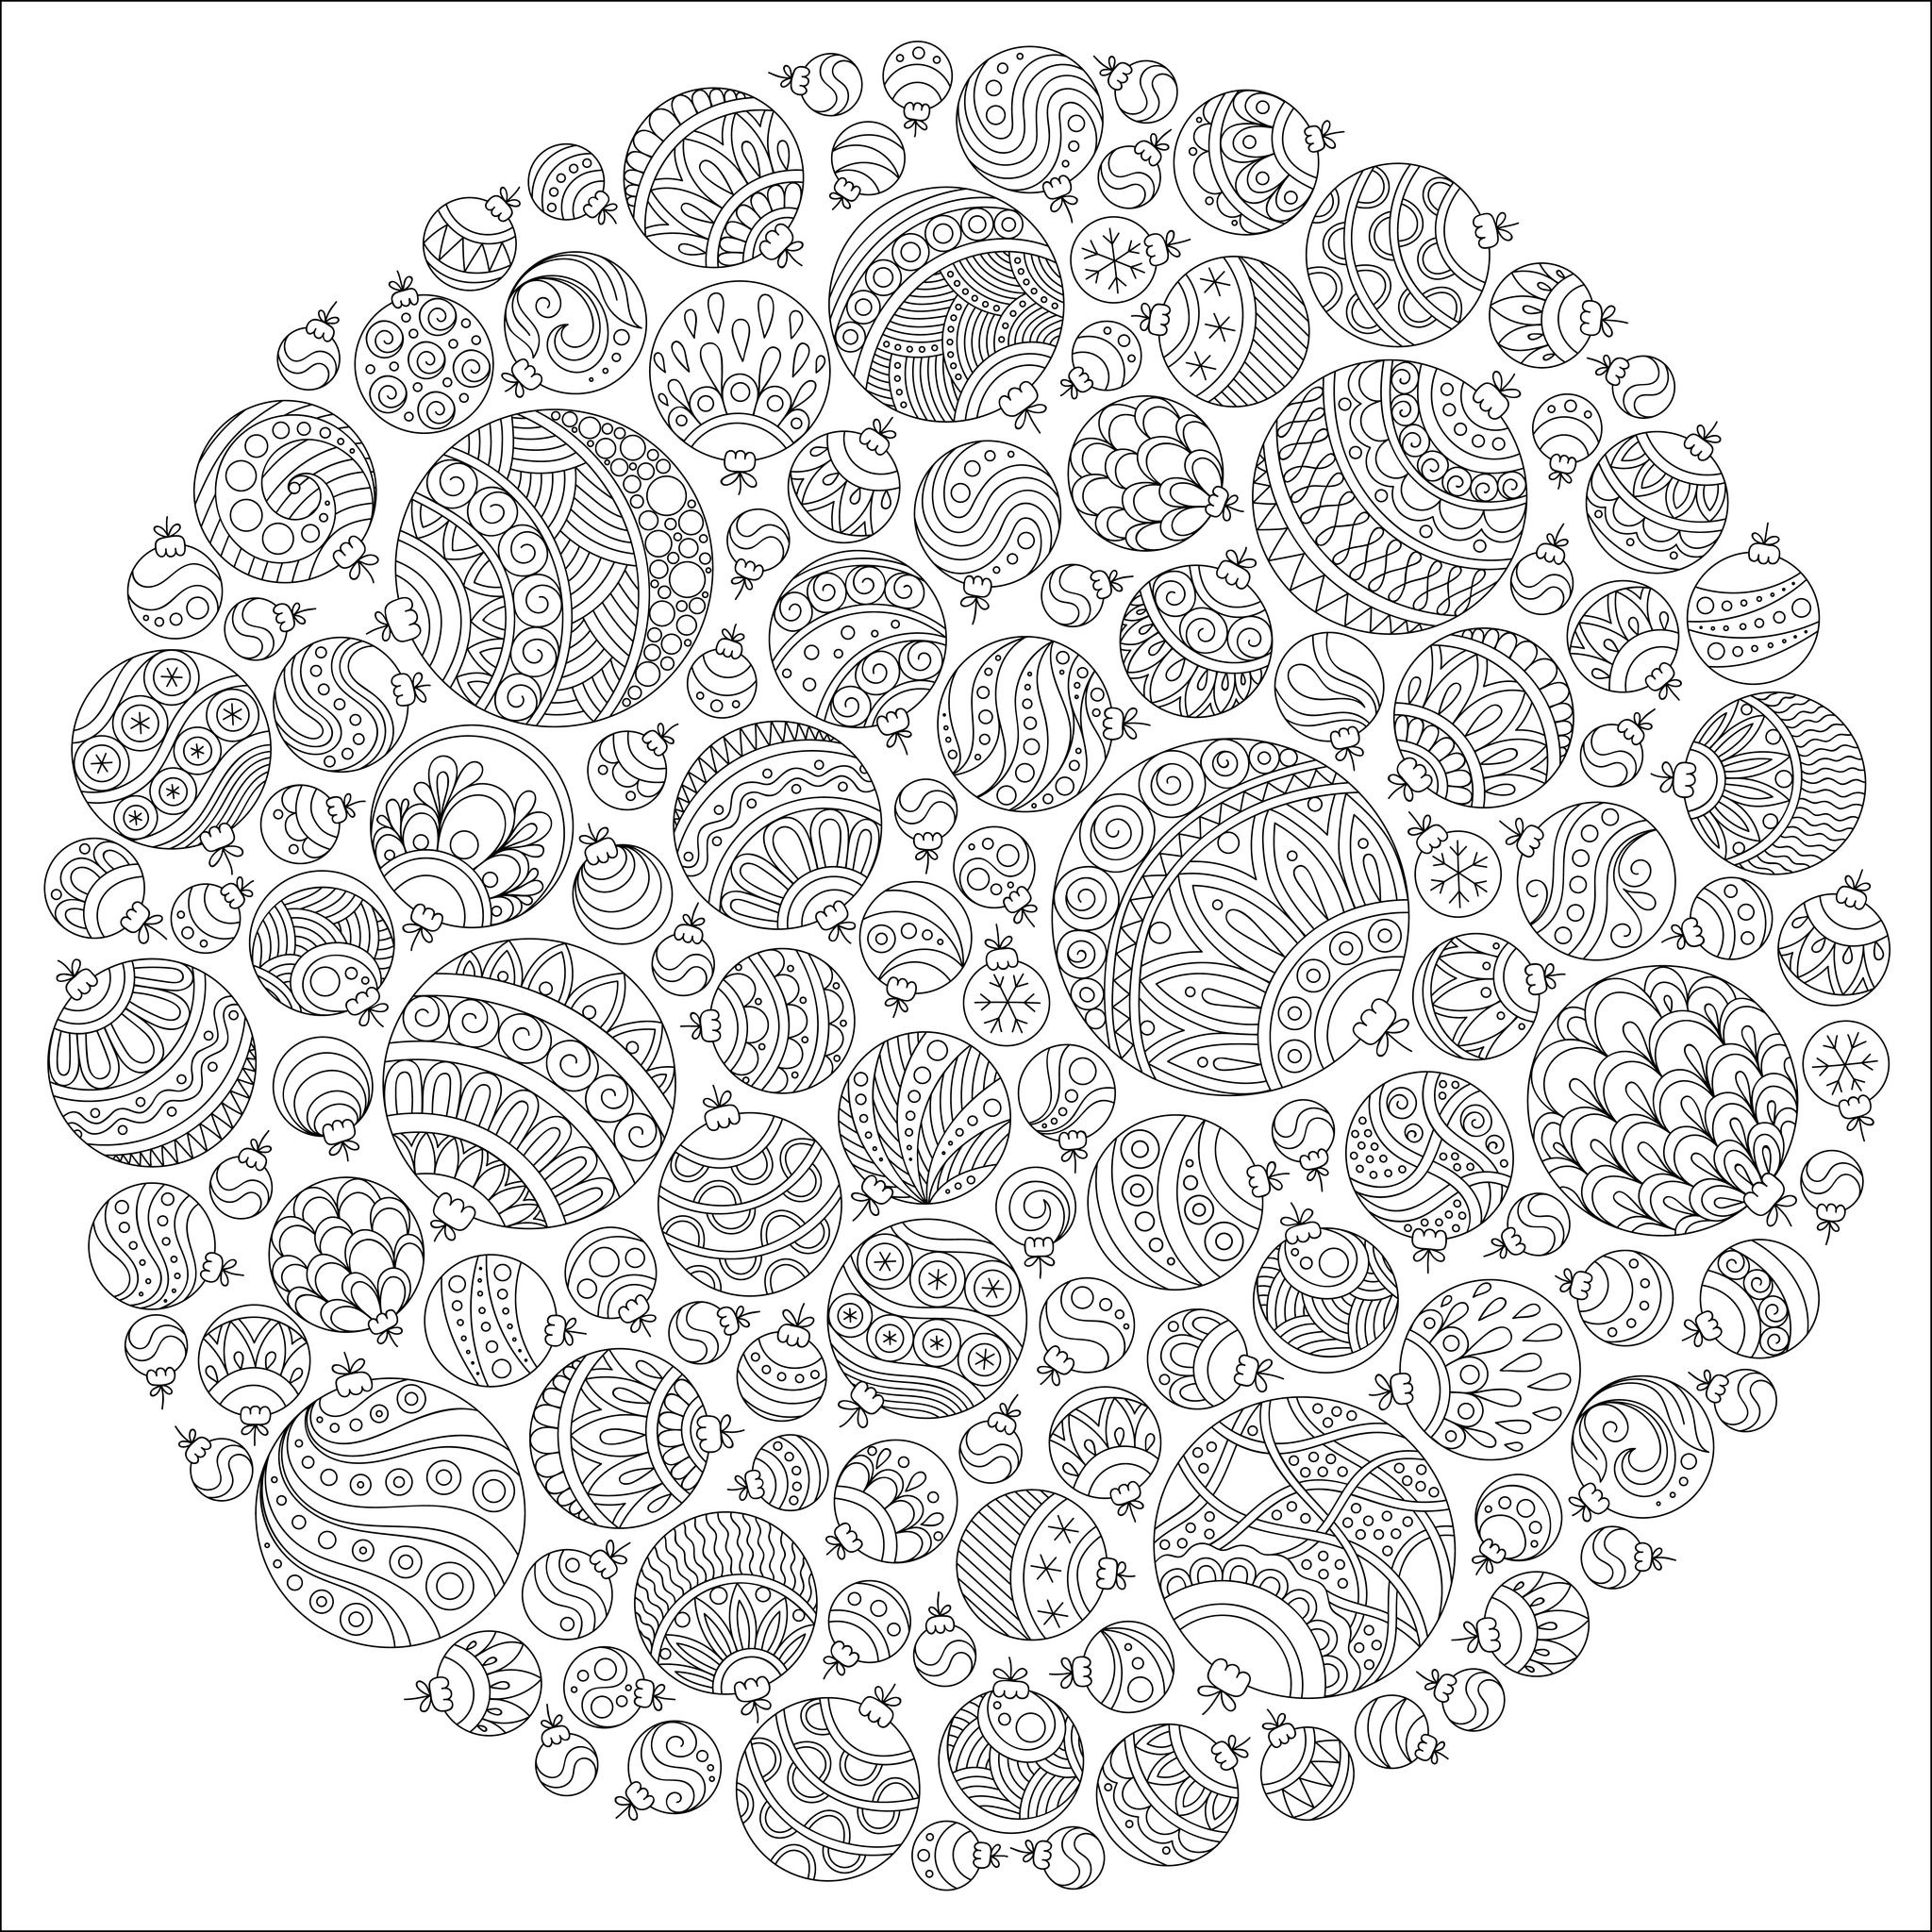 47952727 - pattern for coloring book. christmas hand-drawn decorative elements in vector. fancy christmas ball from balls . pattern for coloring book. black and white pattern.